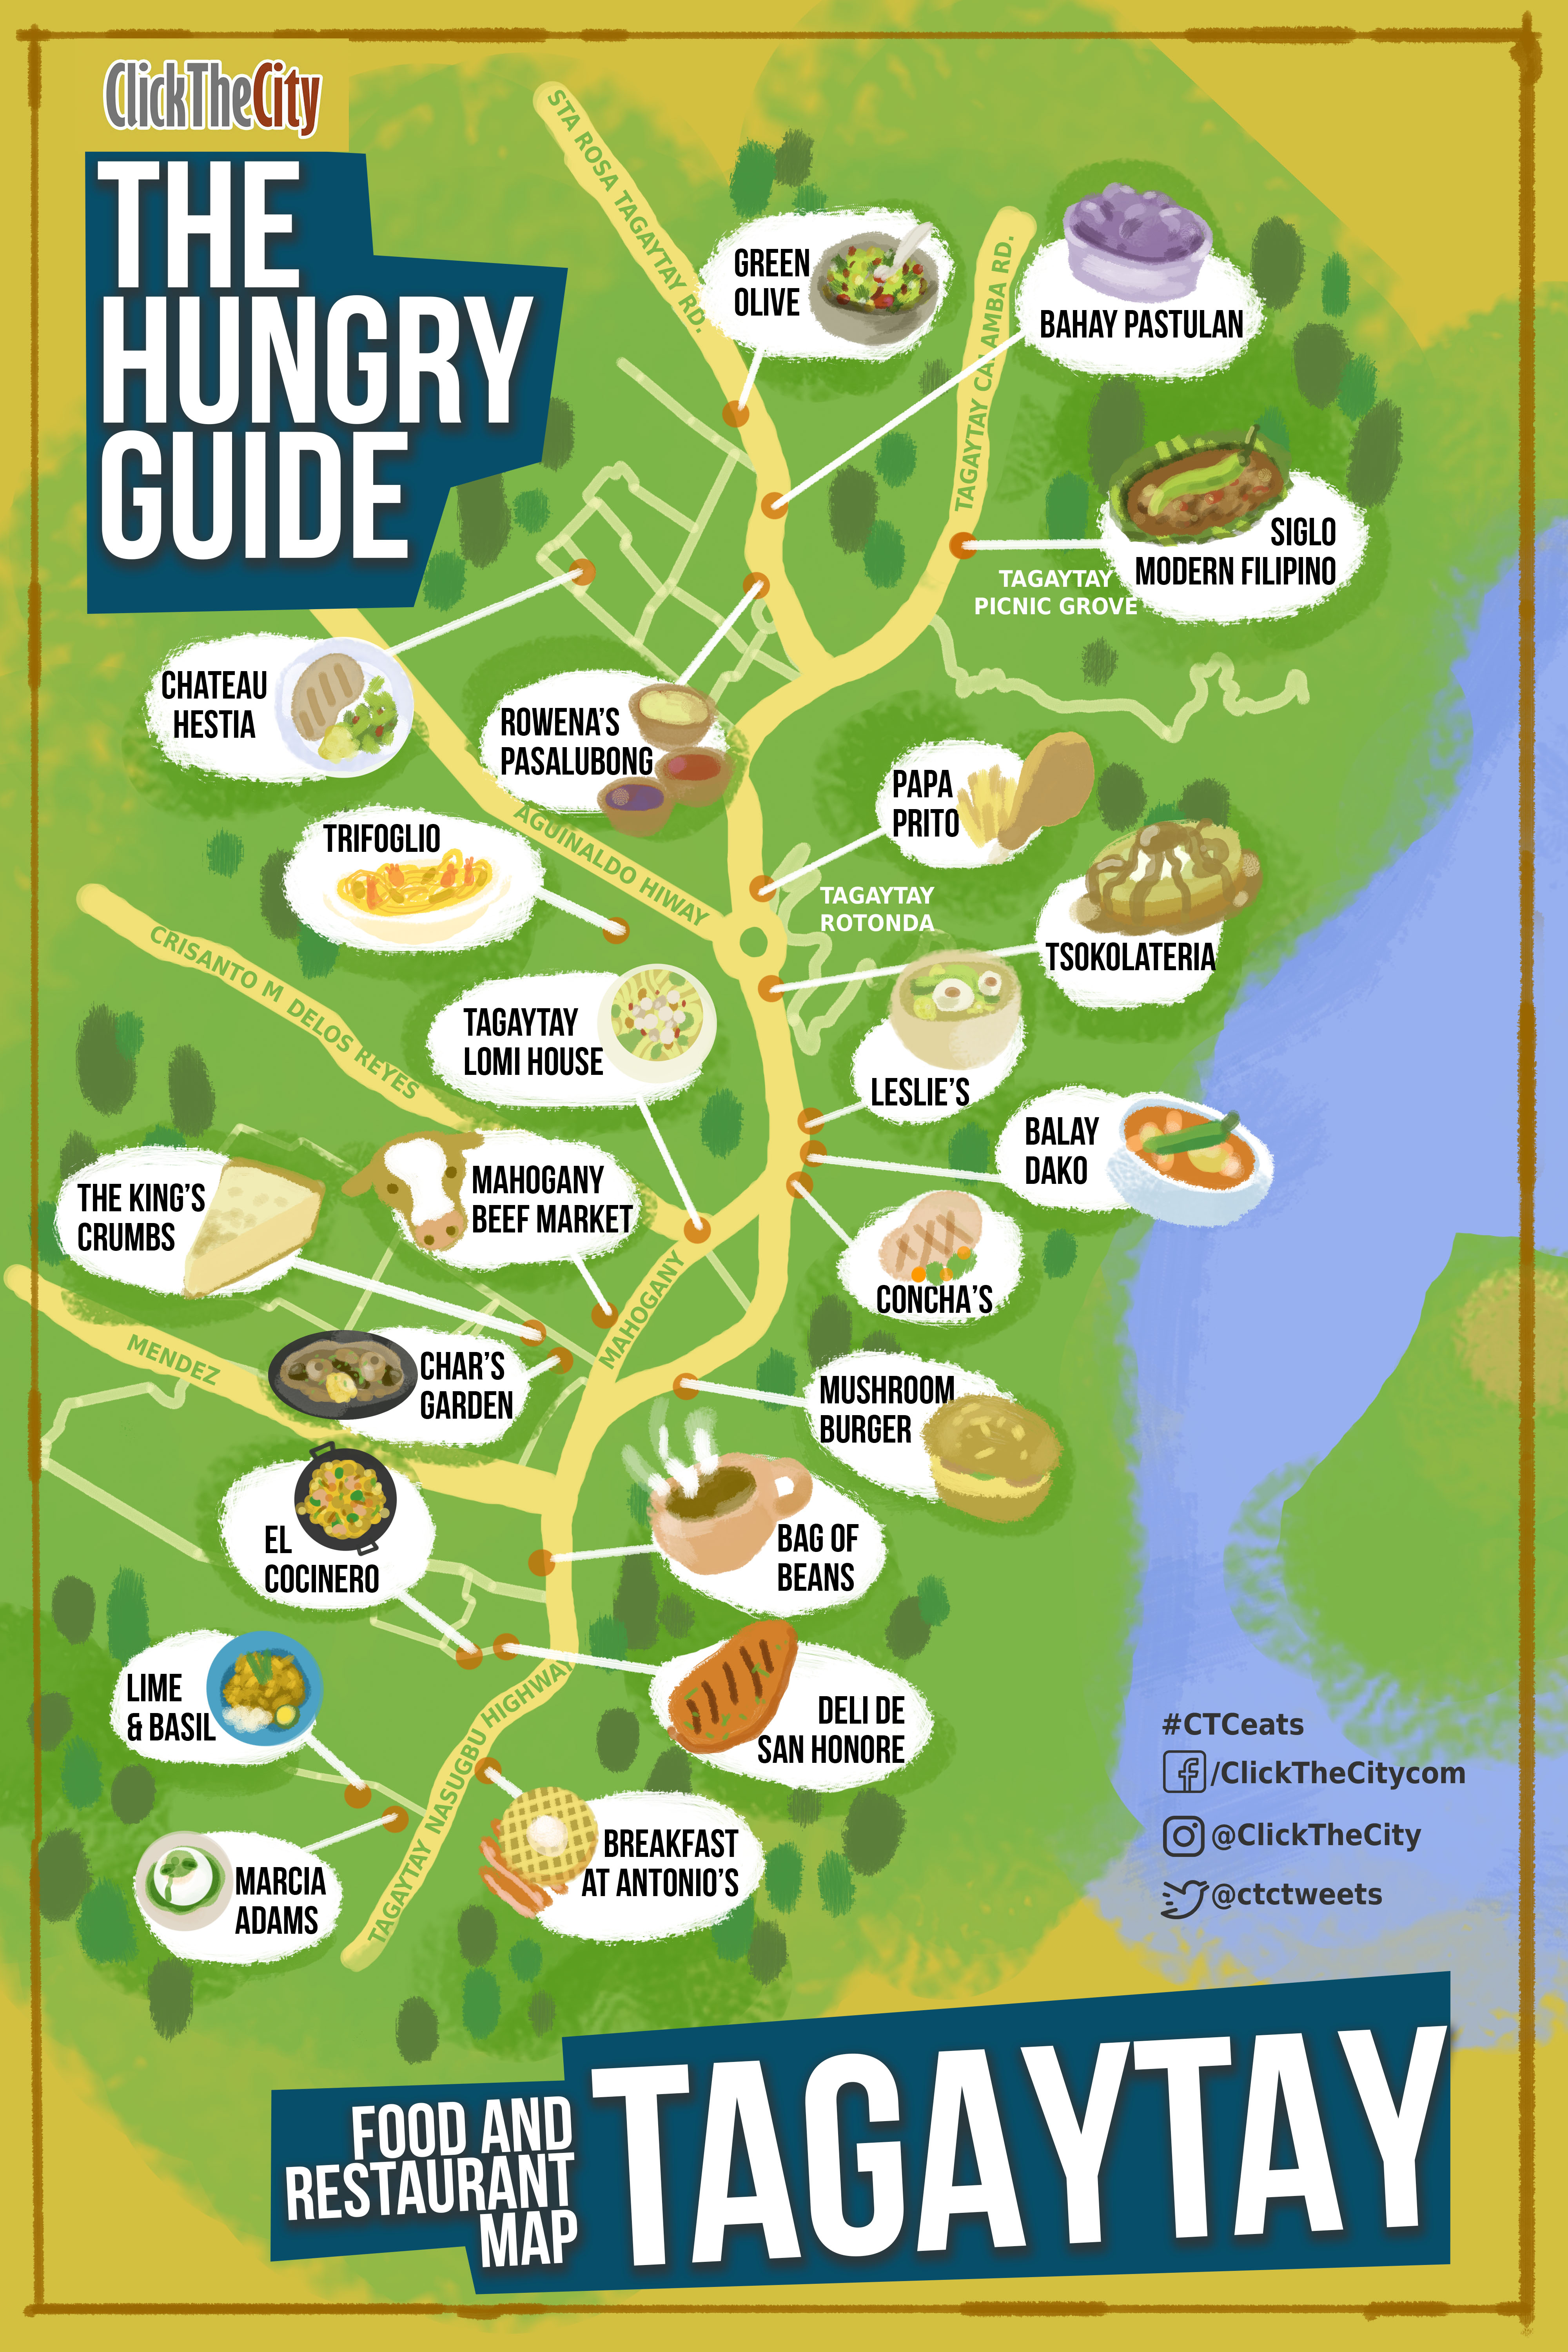 The Hungry Guide Click The City Tagaytay City Cavite